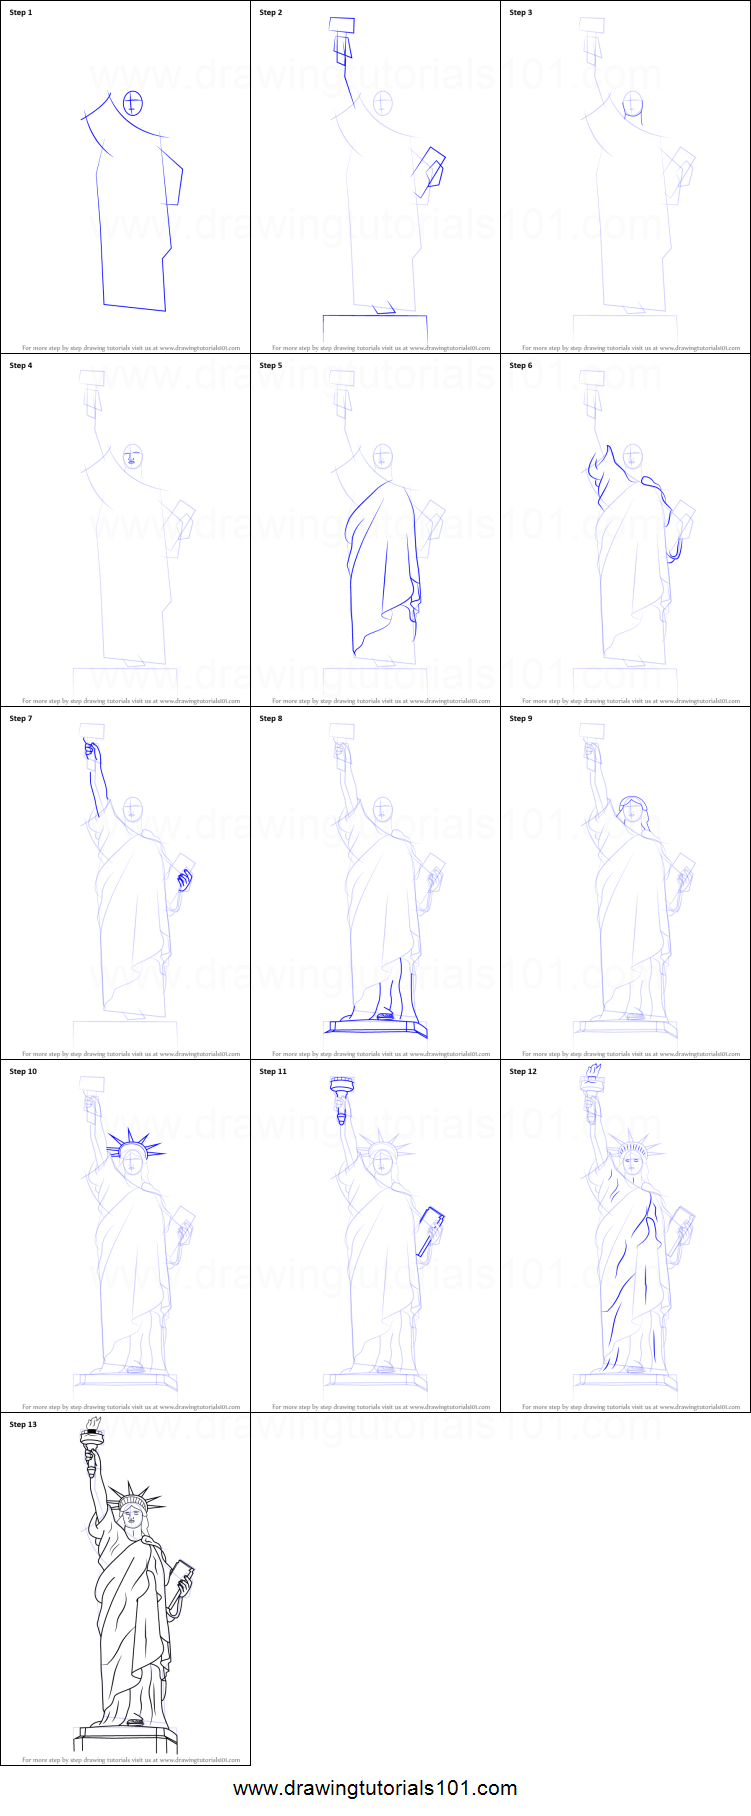 Statue Of Liberty Drawing Step By Step How to Draw Statue of Liberty printable step by step